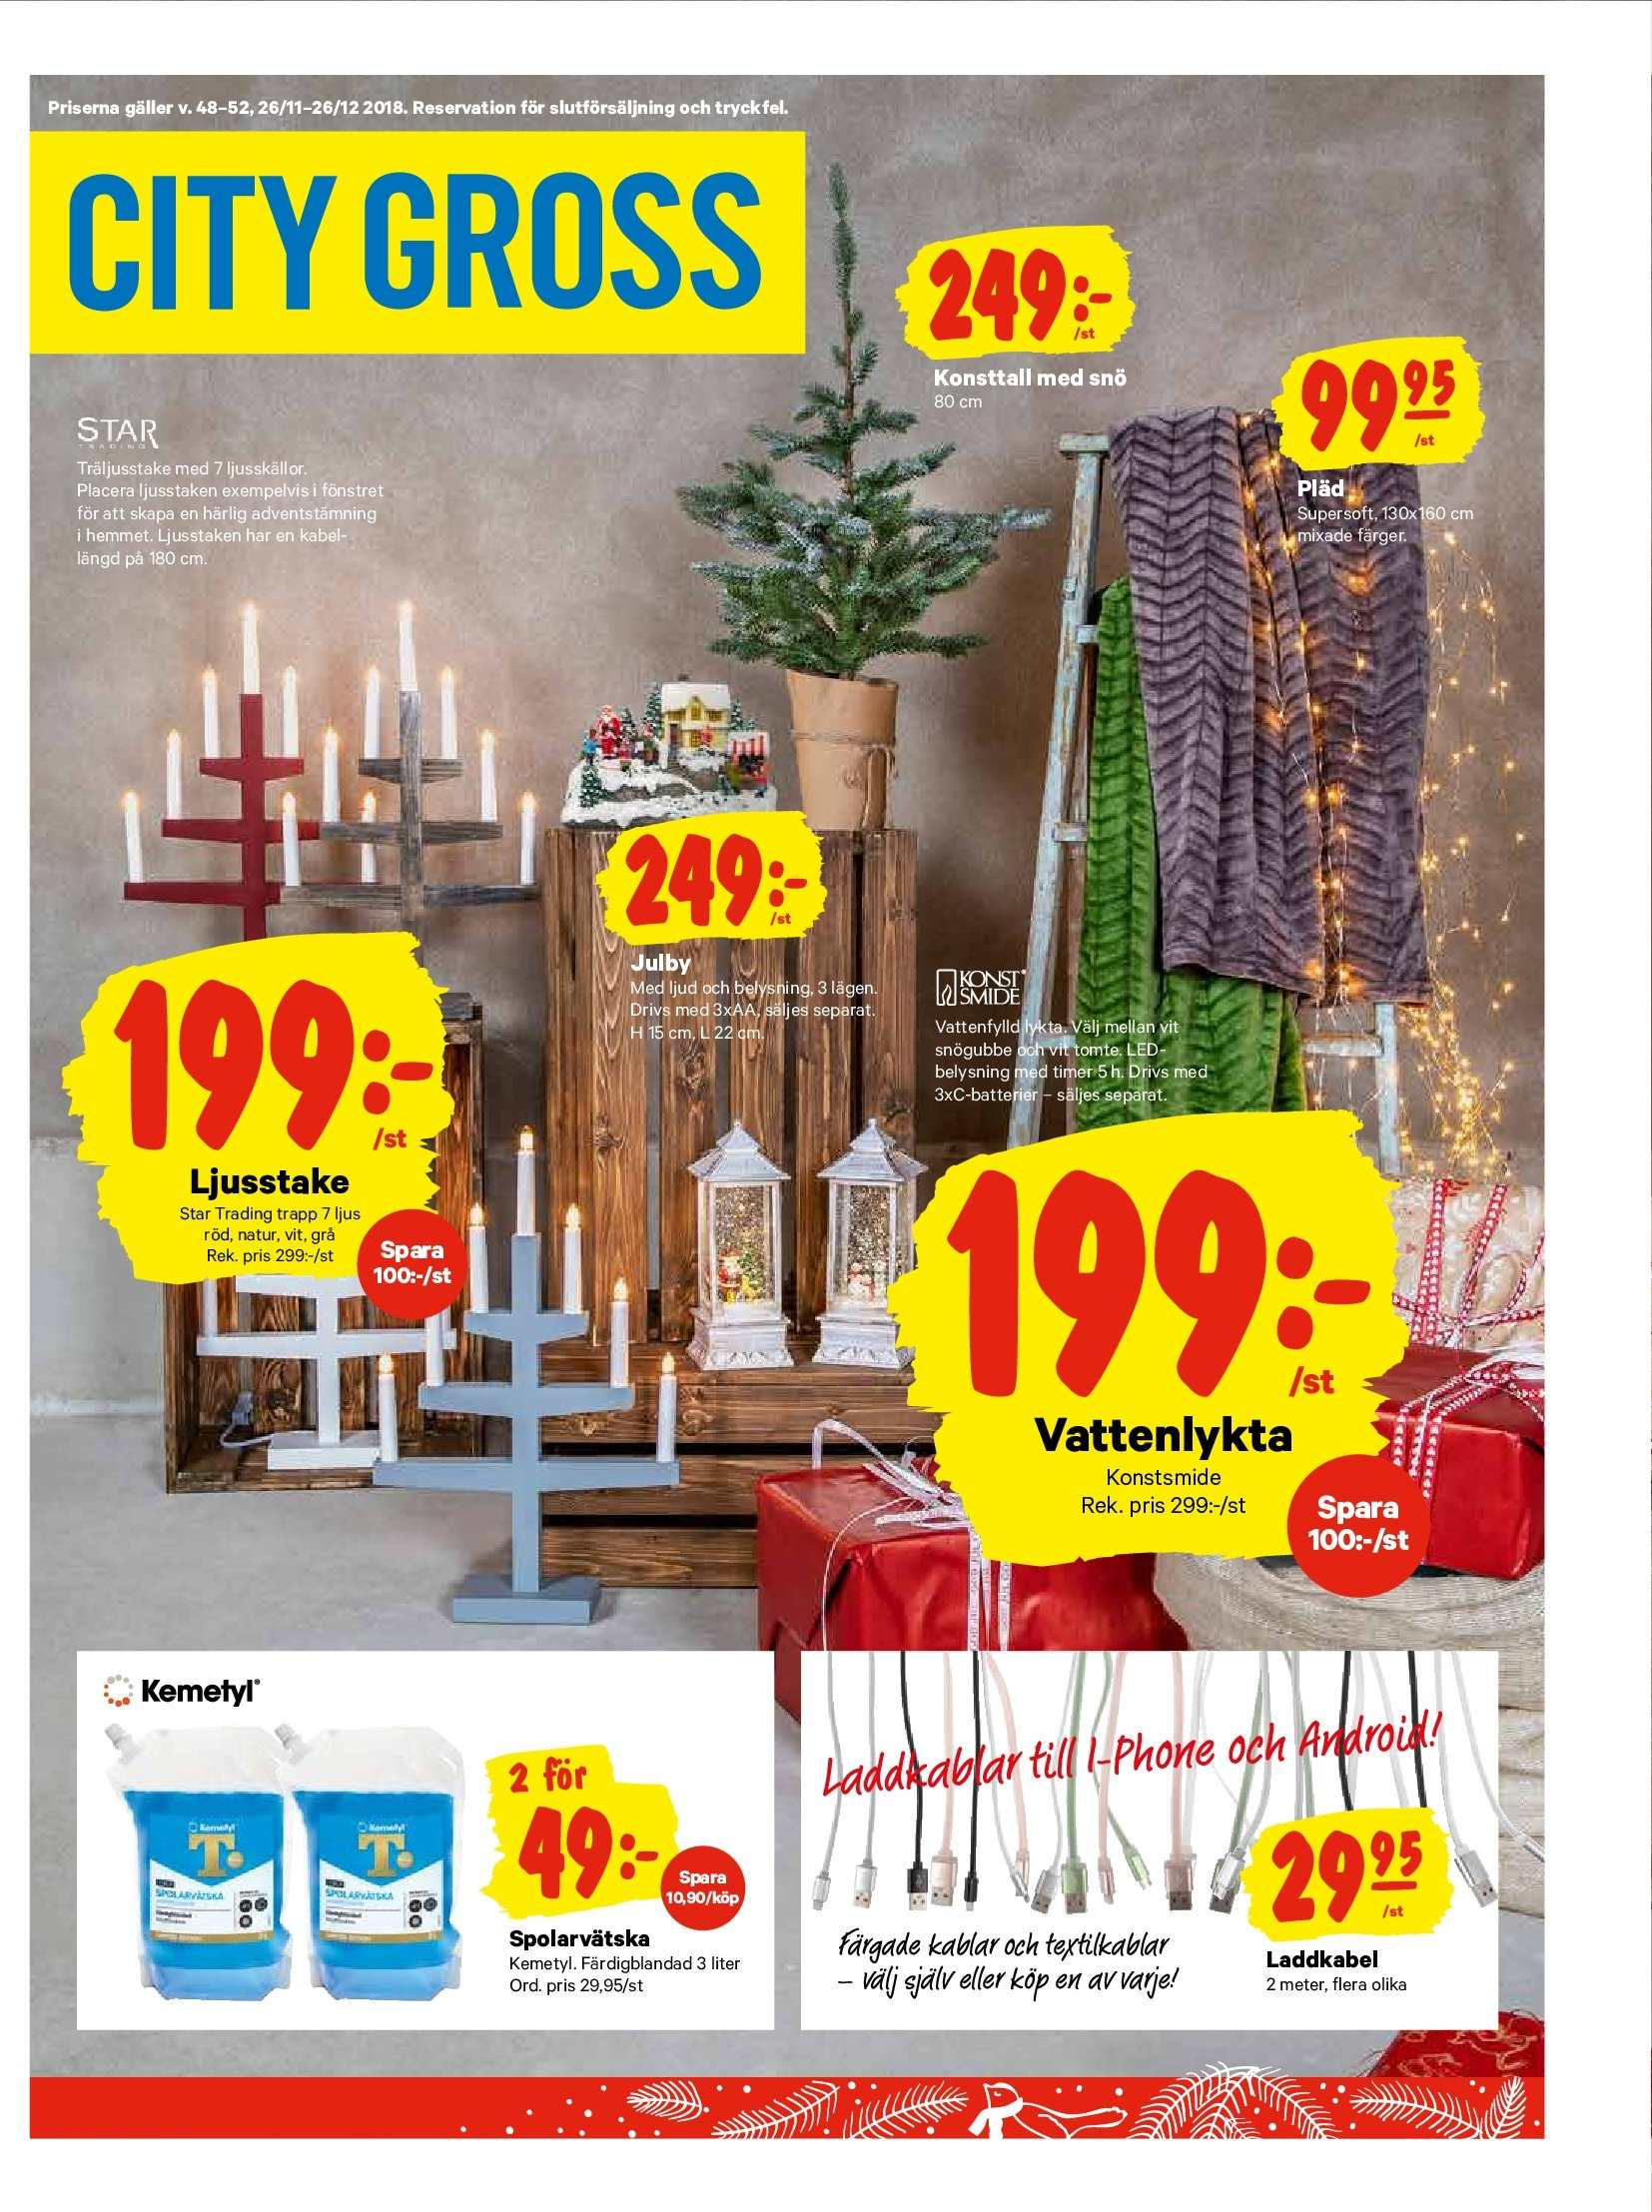 City Gross reklamblad - 26/11 2018 - 2/12 2018. Sida 13.